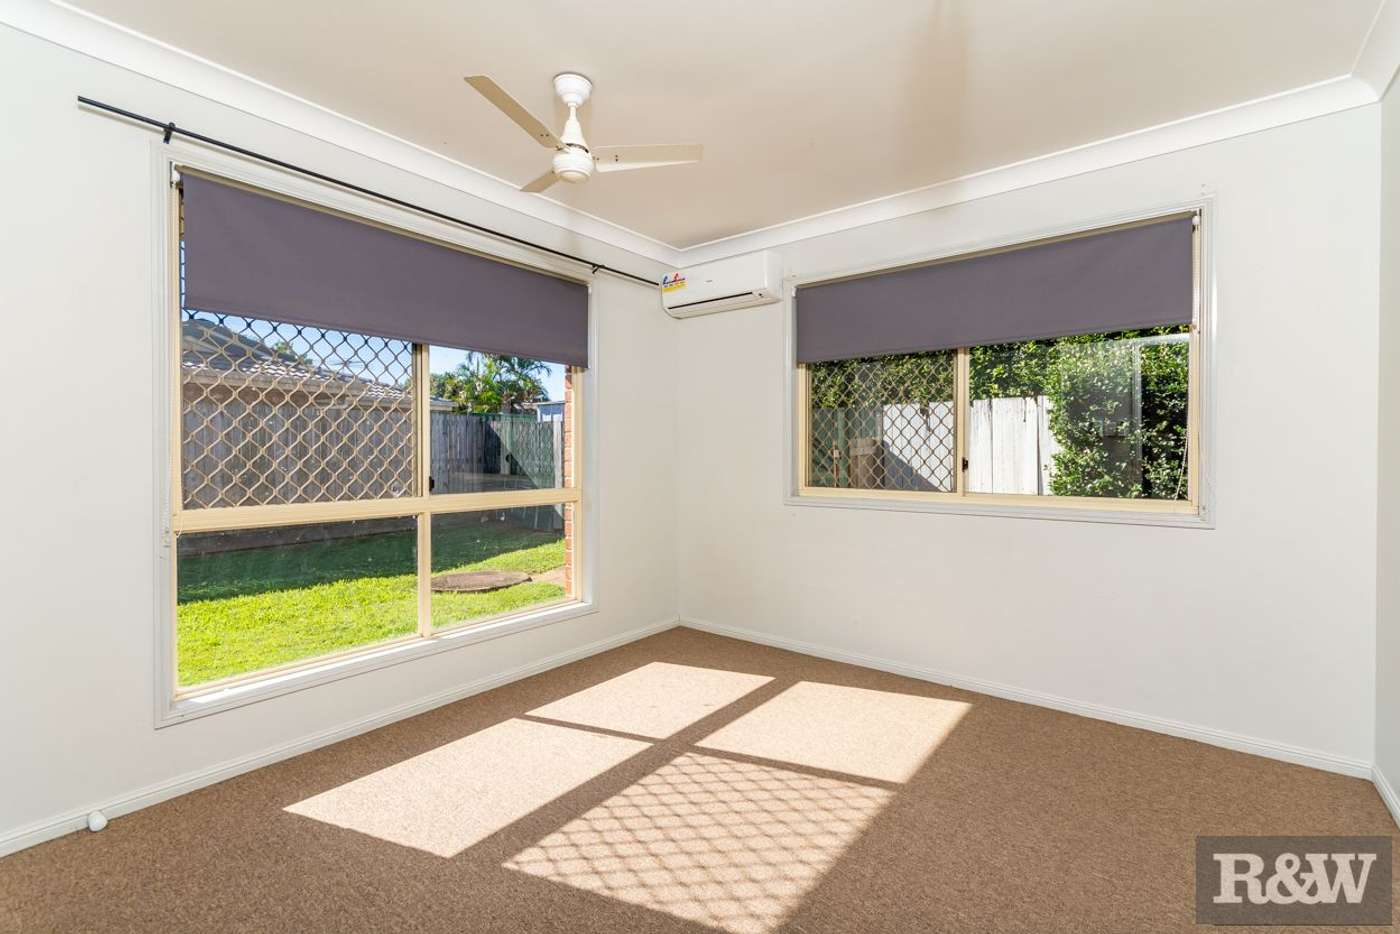 Sixth view of Homely house listing, 1/47 Belvedere Crescent, Bellmere QLD 4510